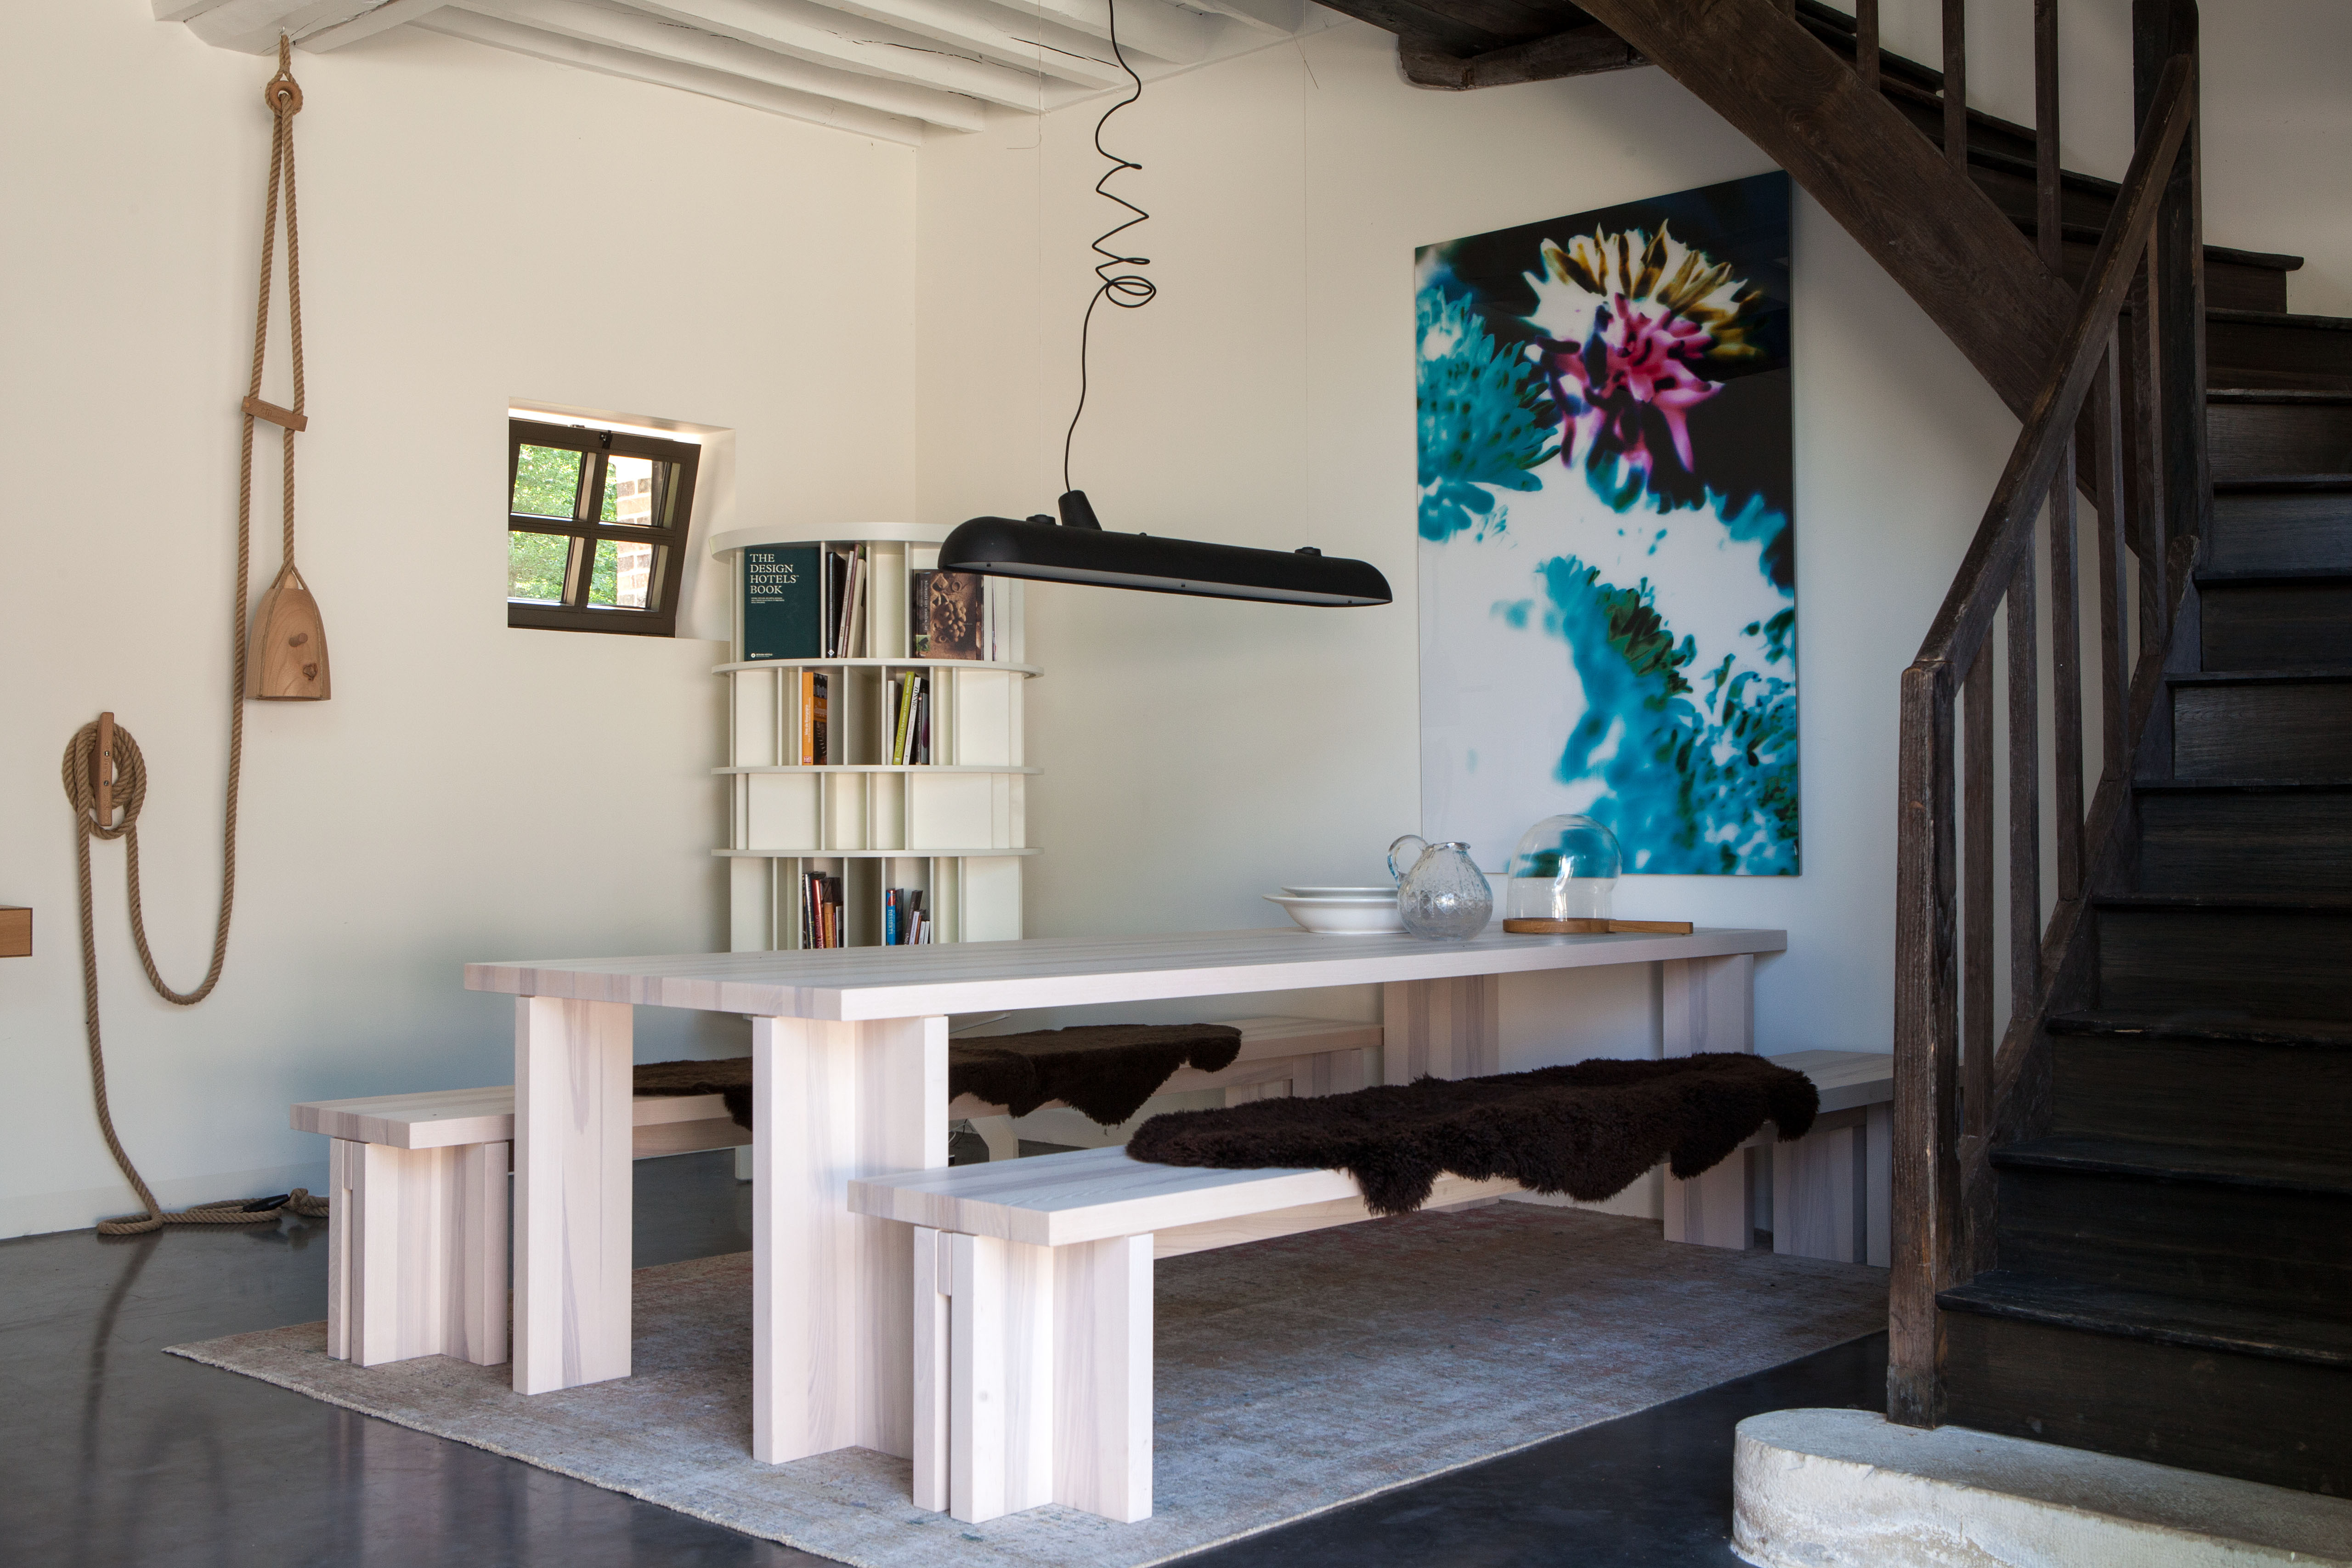 chefs table at ch teau de la resle ch teau de la resle. Black Bedroom Furniture Sets. Home Design Ideas